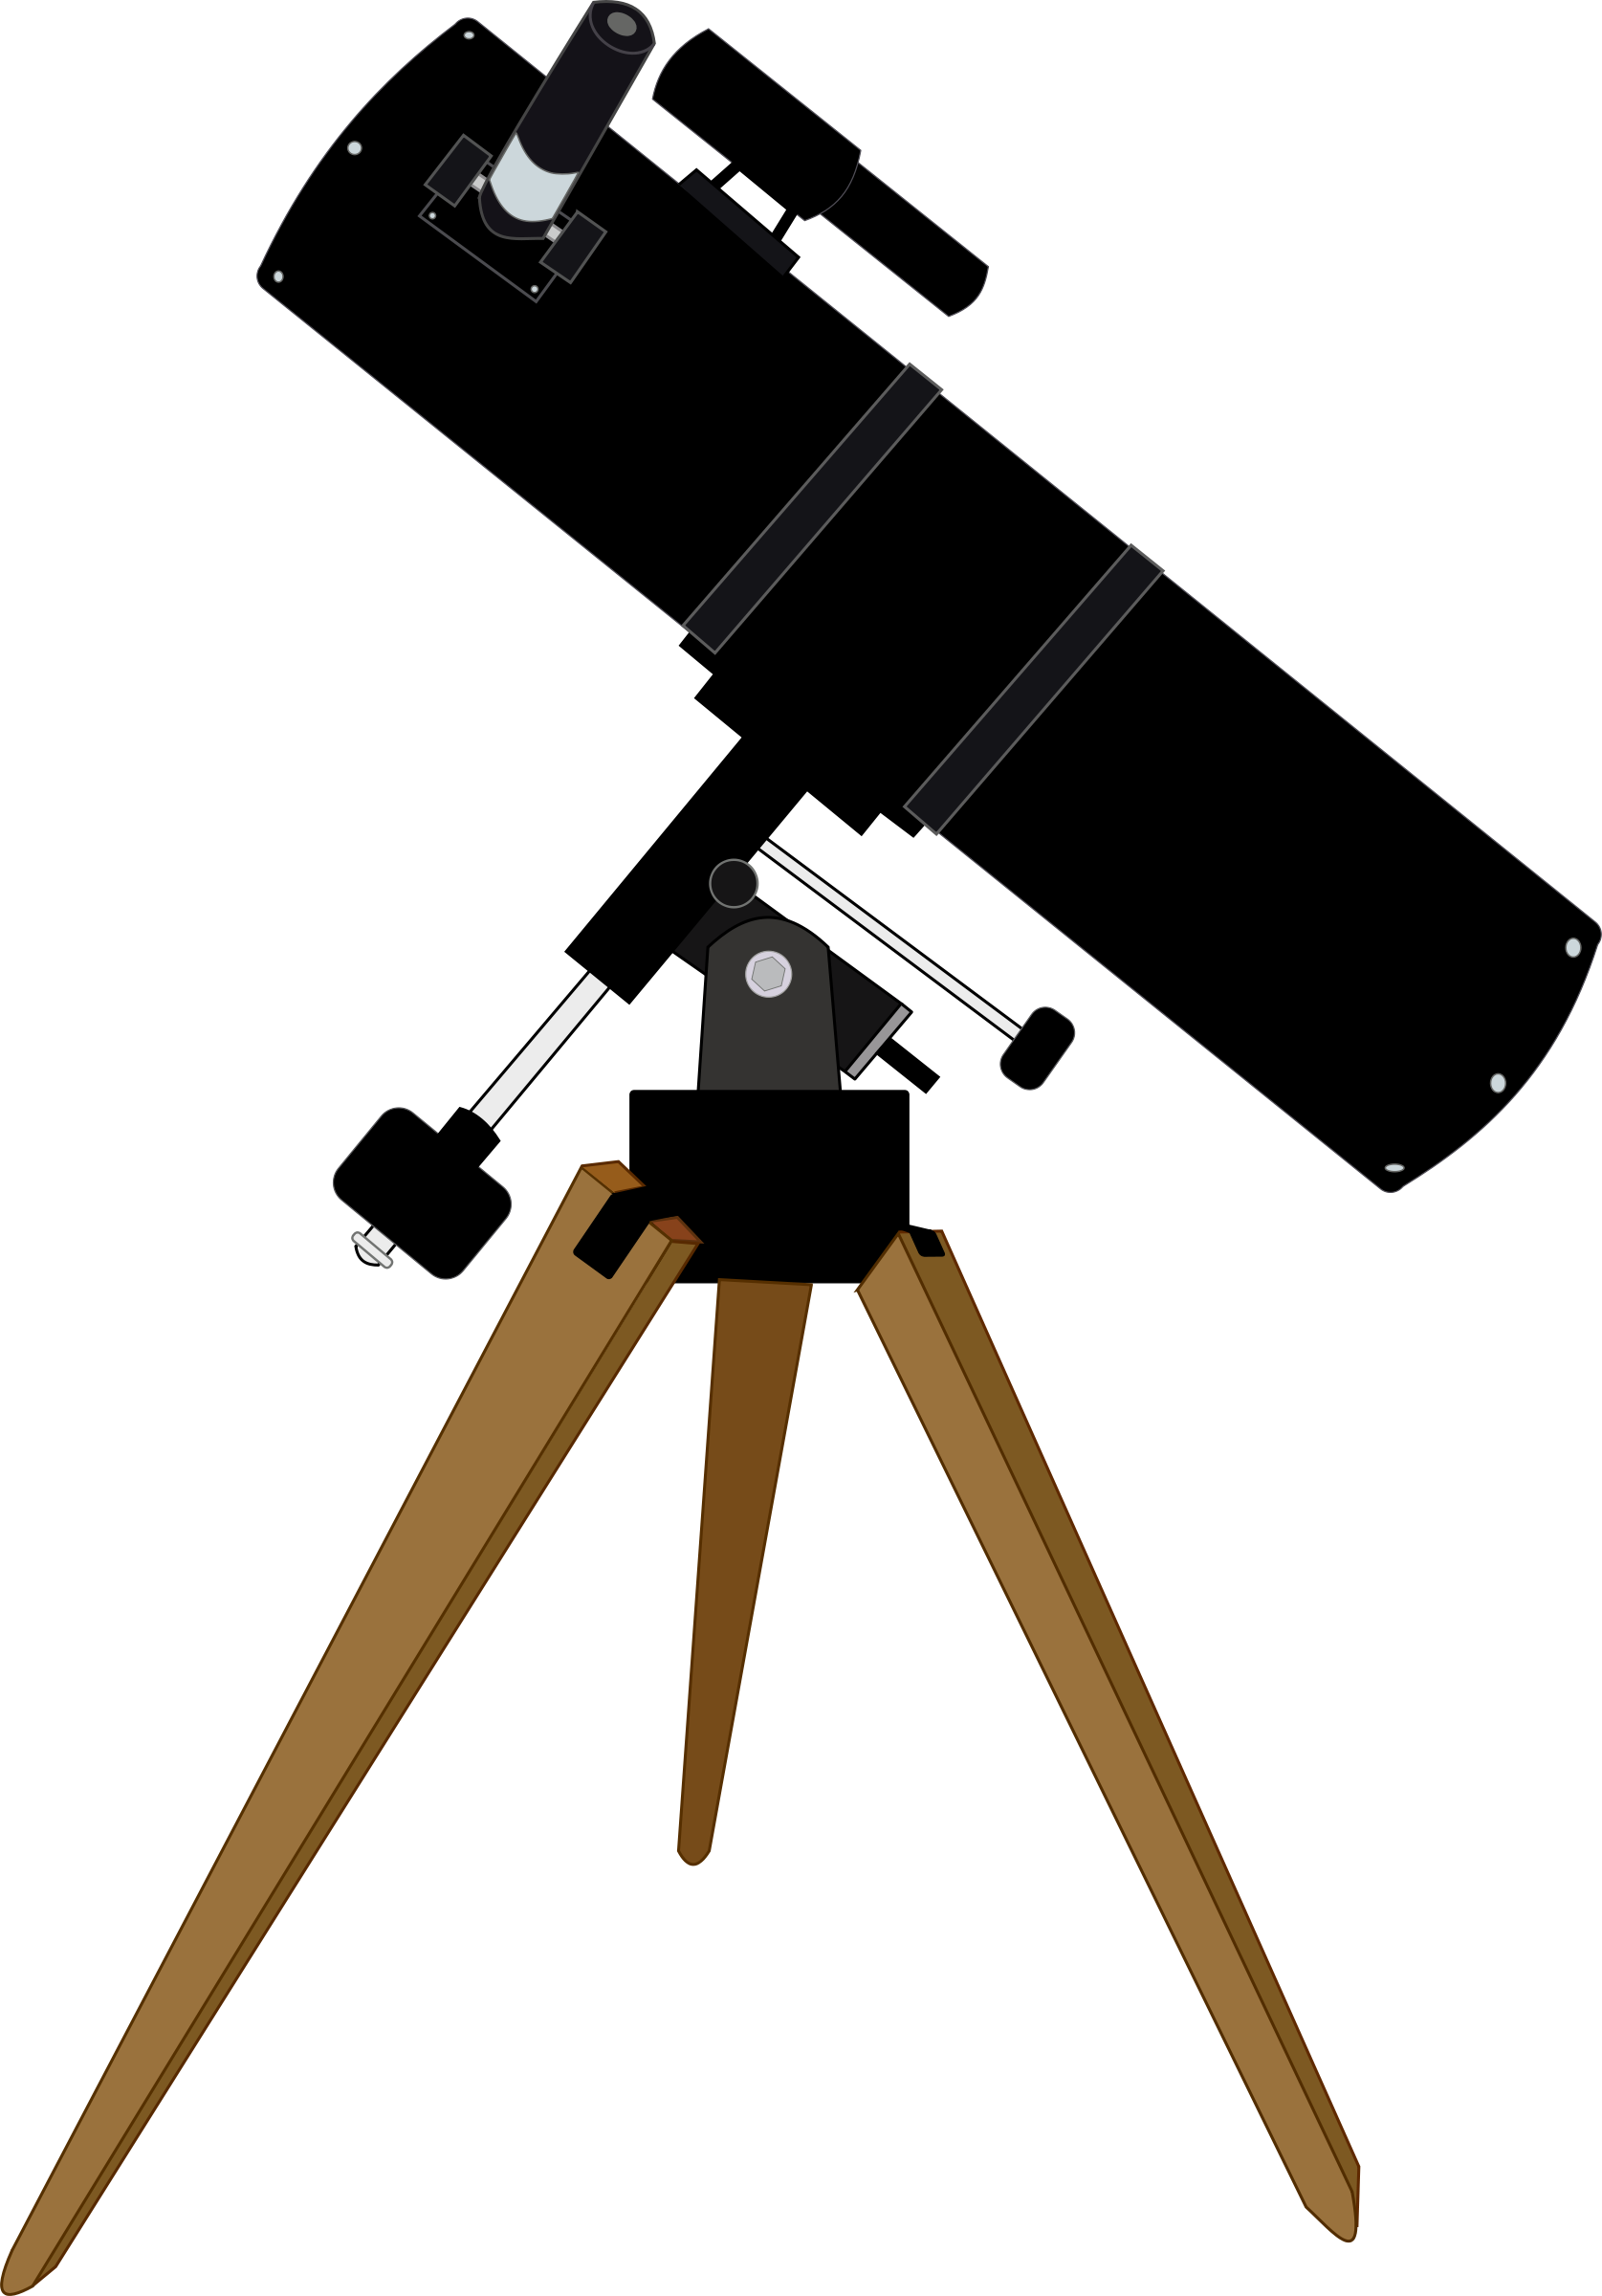 Telescope Clipart | Clipart Panda - Free Clipart Images